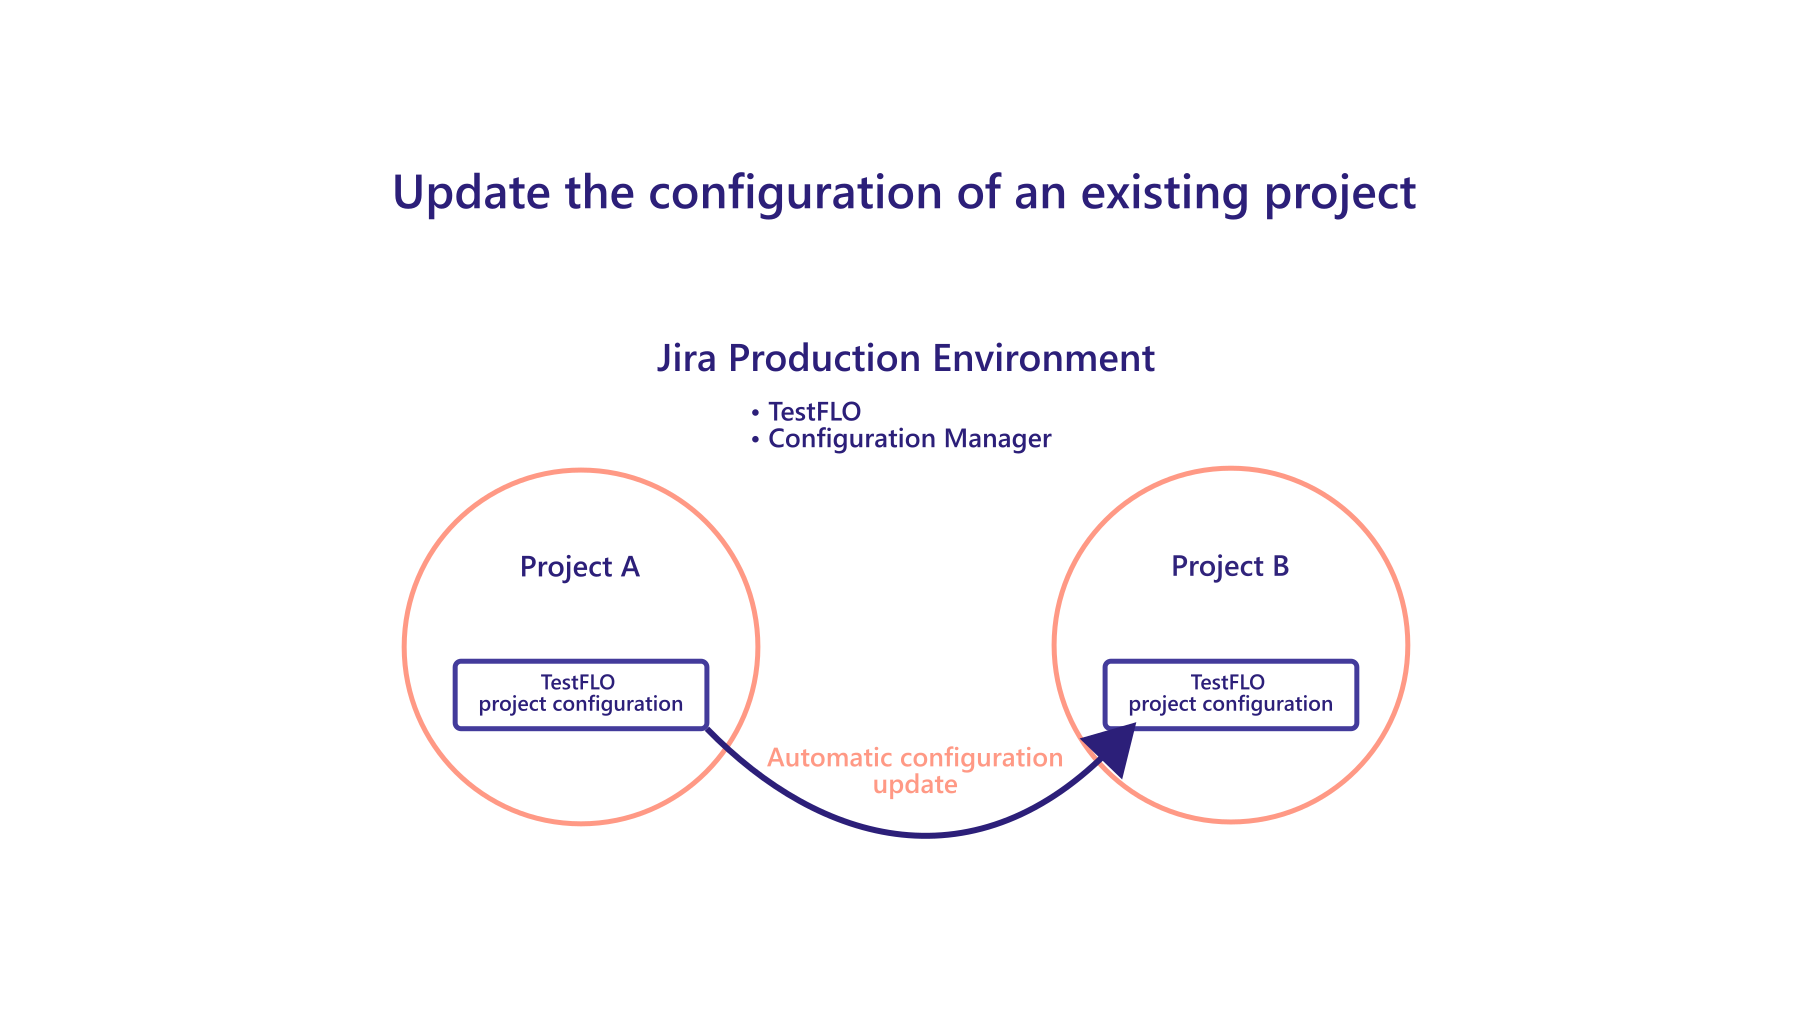 Update existing project configuration